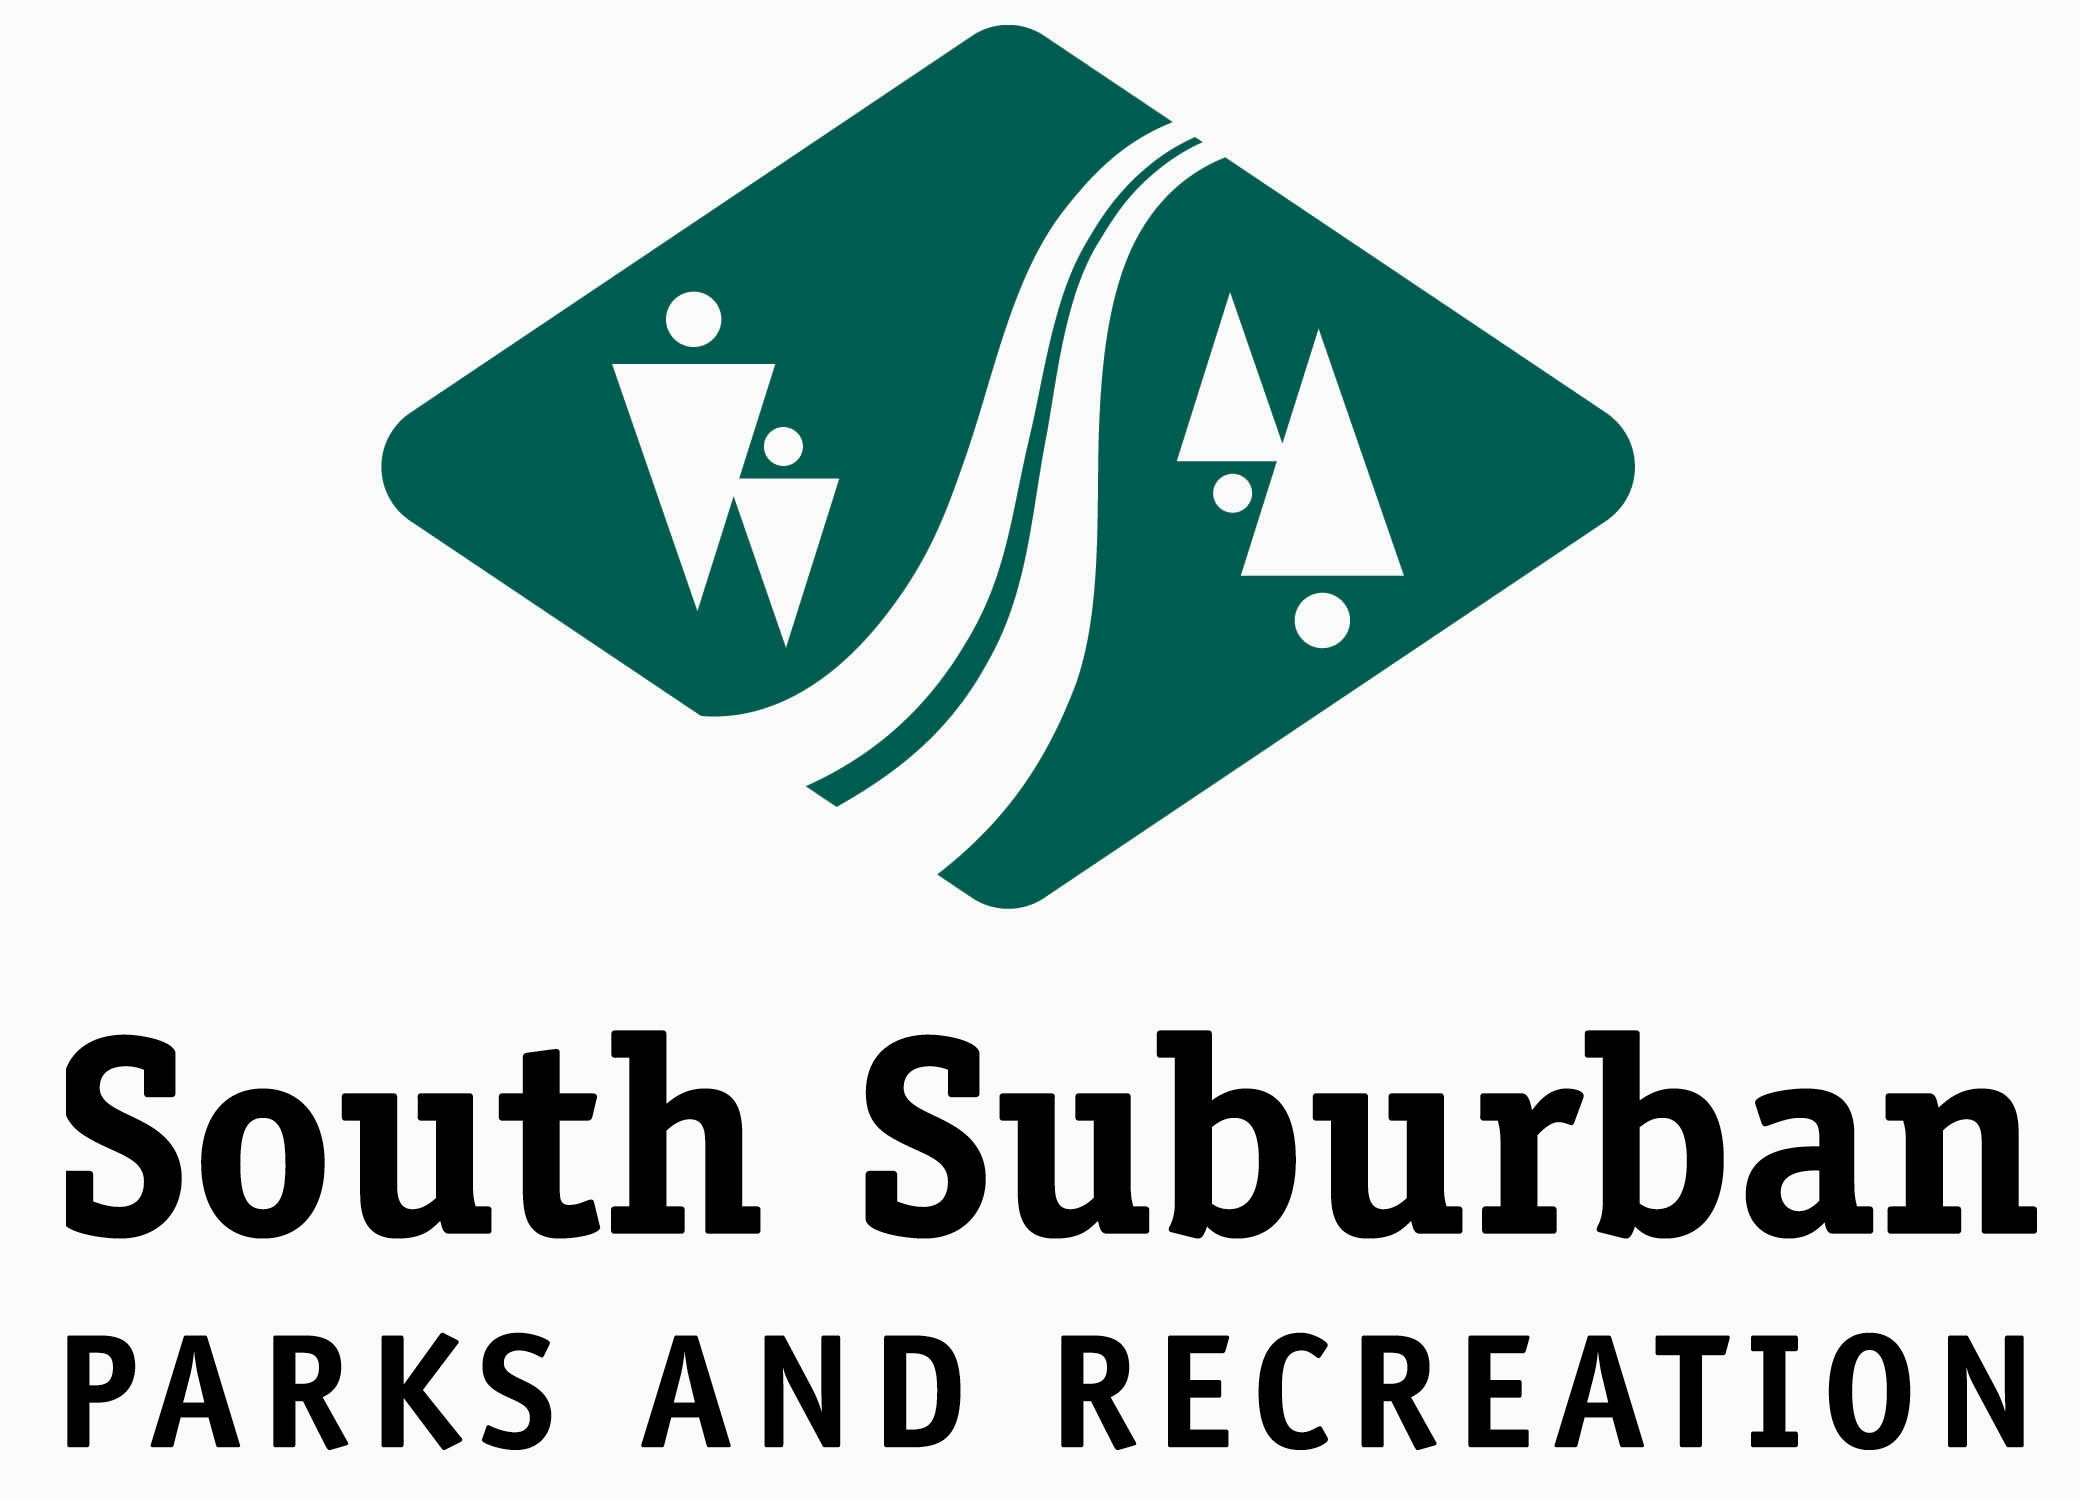 South Suburban Park and Recreation District logo